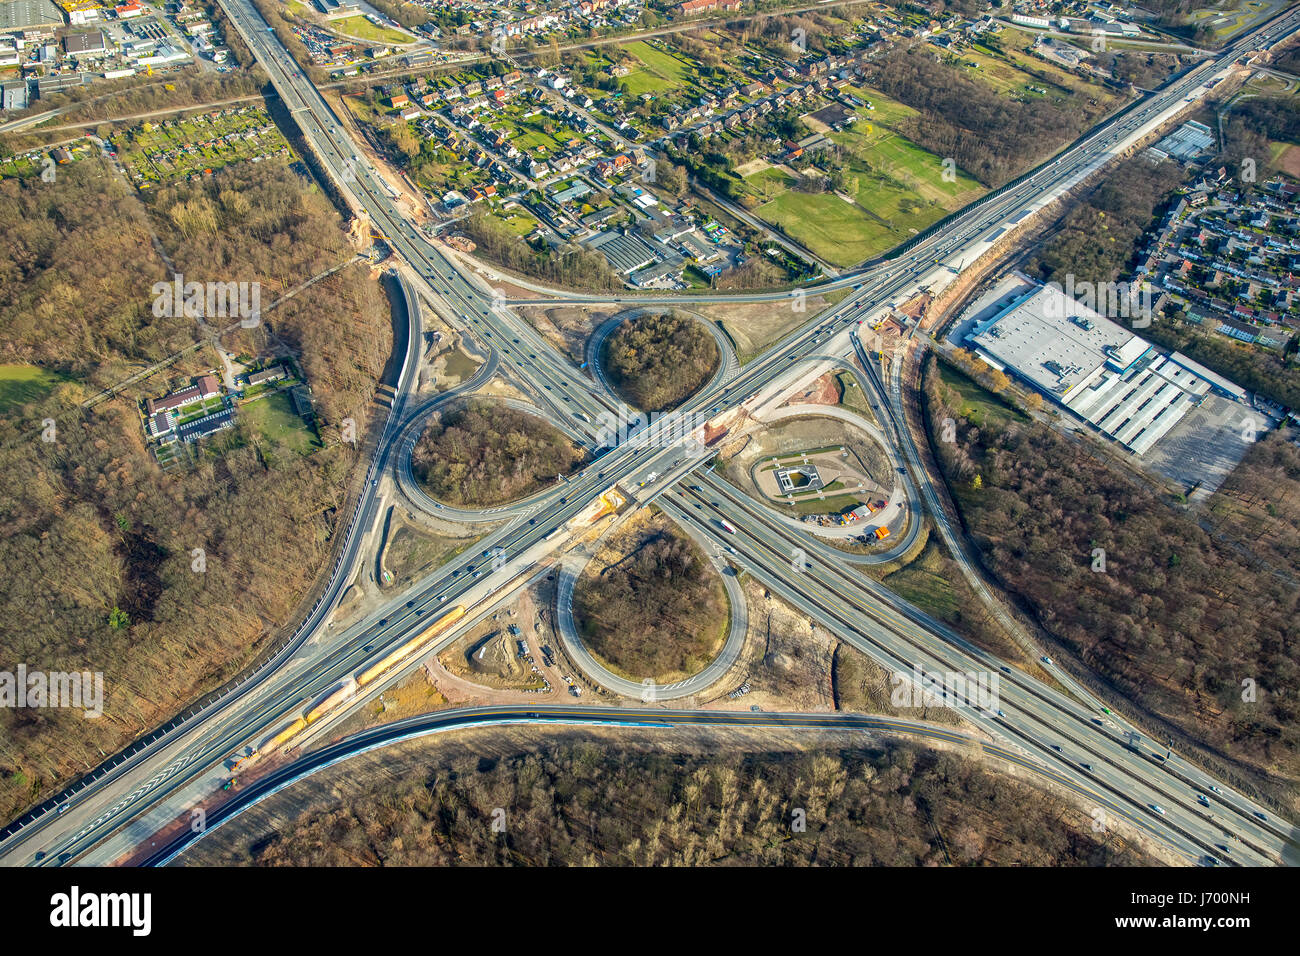 Expansion of the A43 motorway between Recklinghausen and Herne, Recklinghausen motorway junction, A2 motorway and Stock Photo